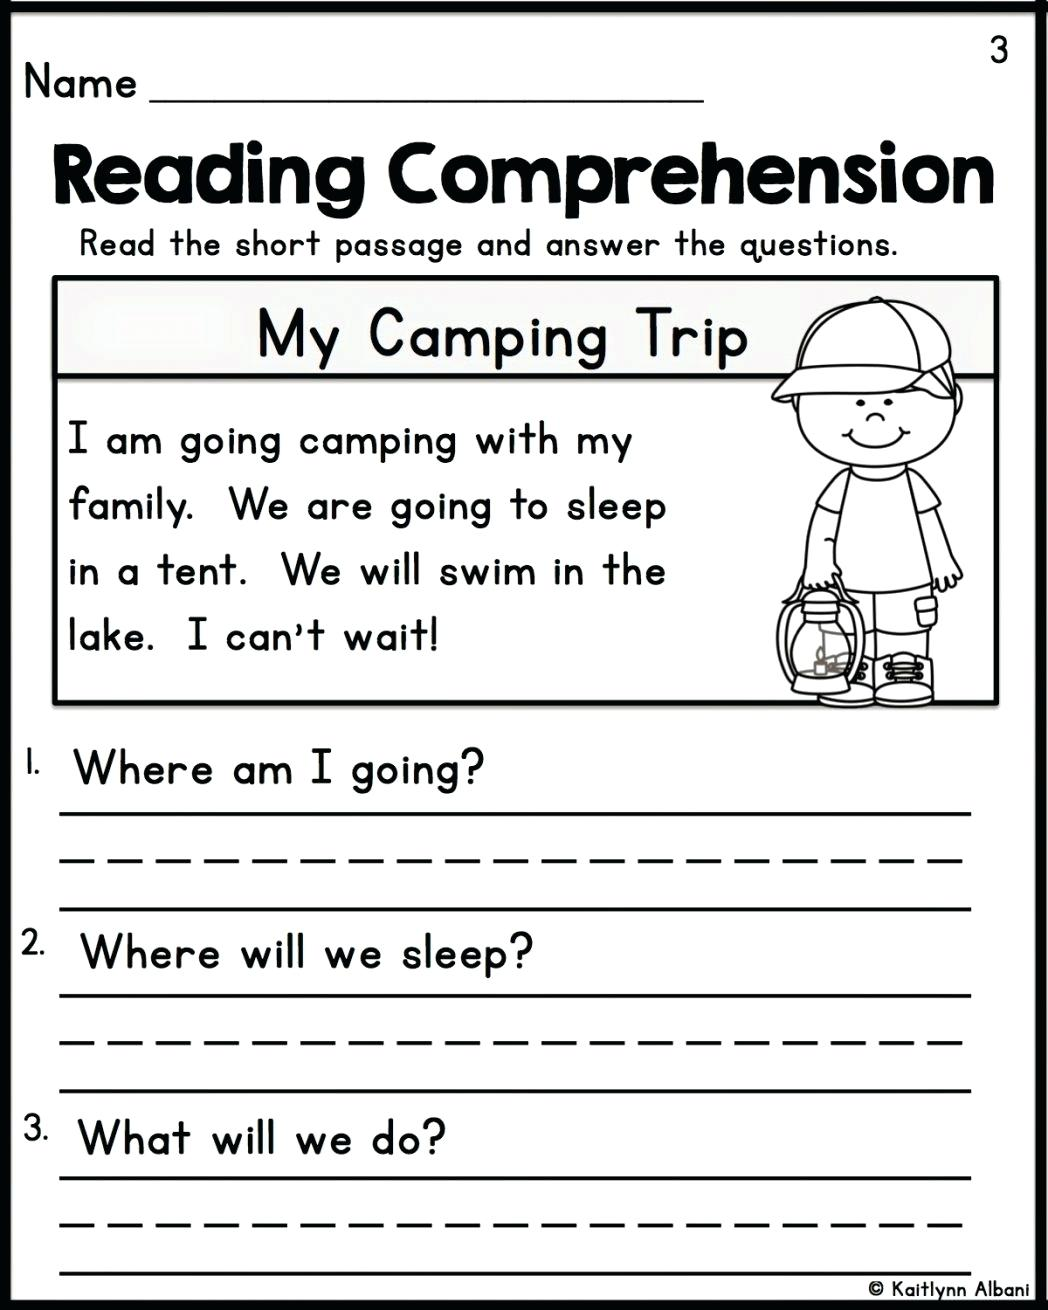 Worksheet Year 1 Reading Comprehension Worksheets Tes Year